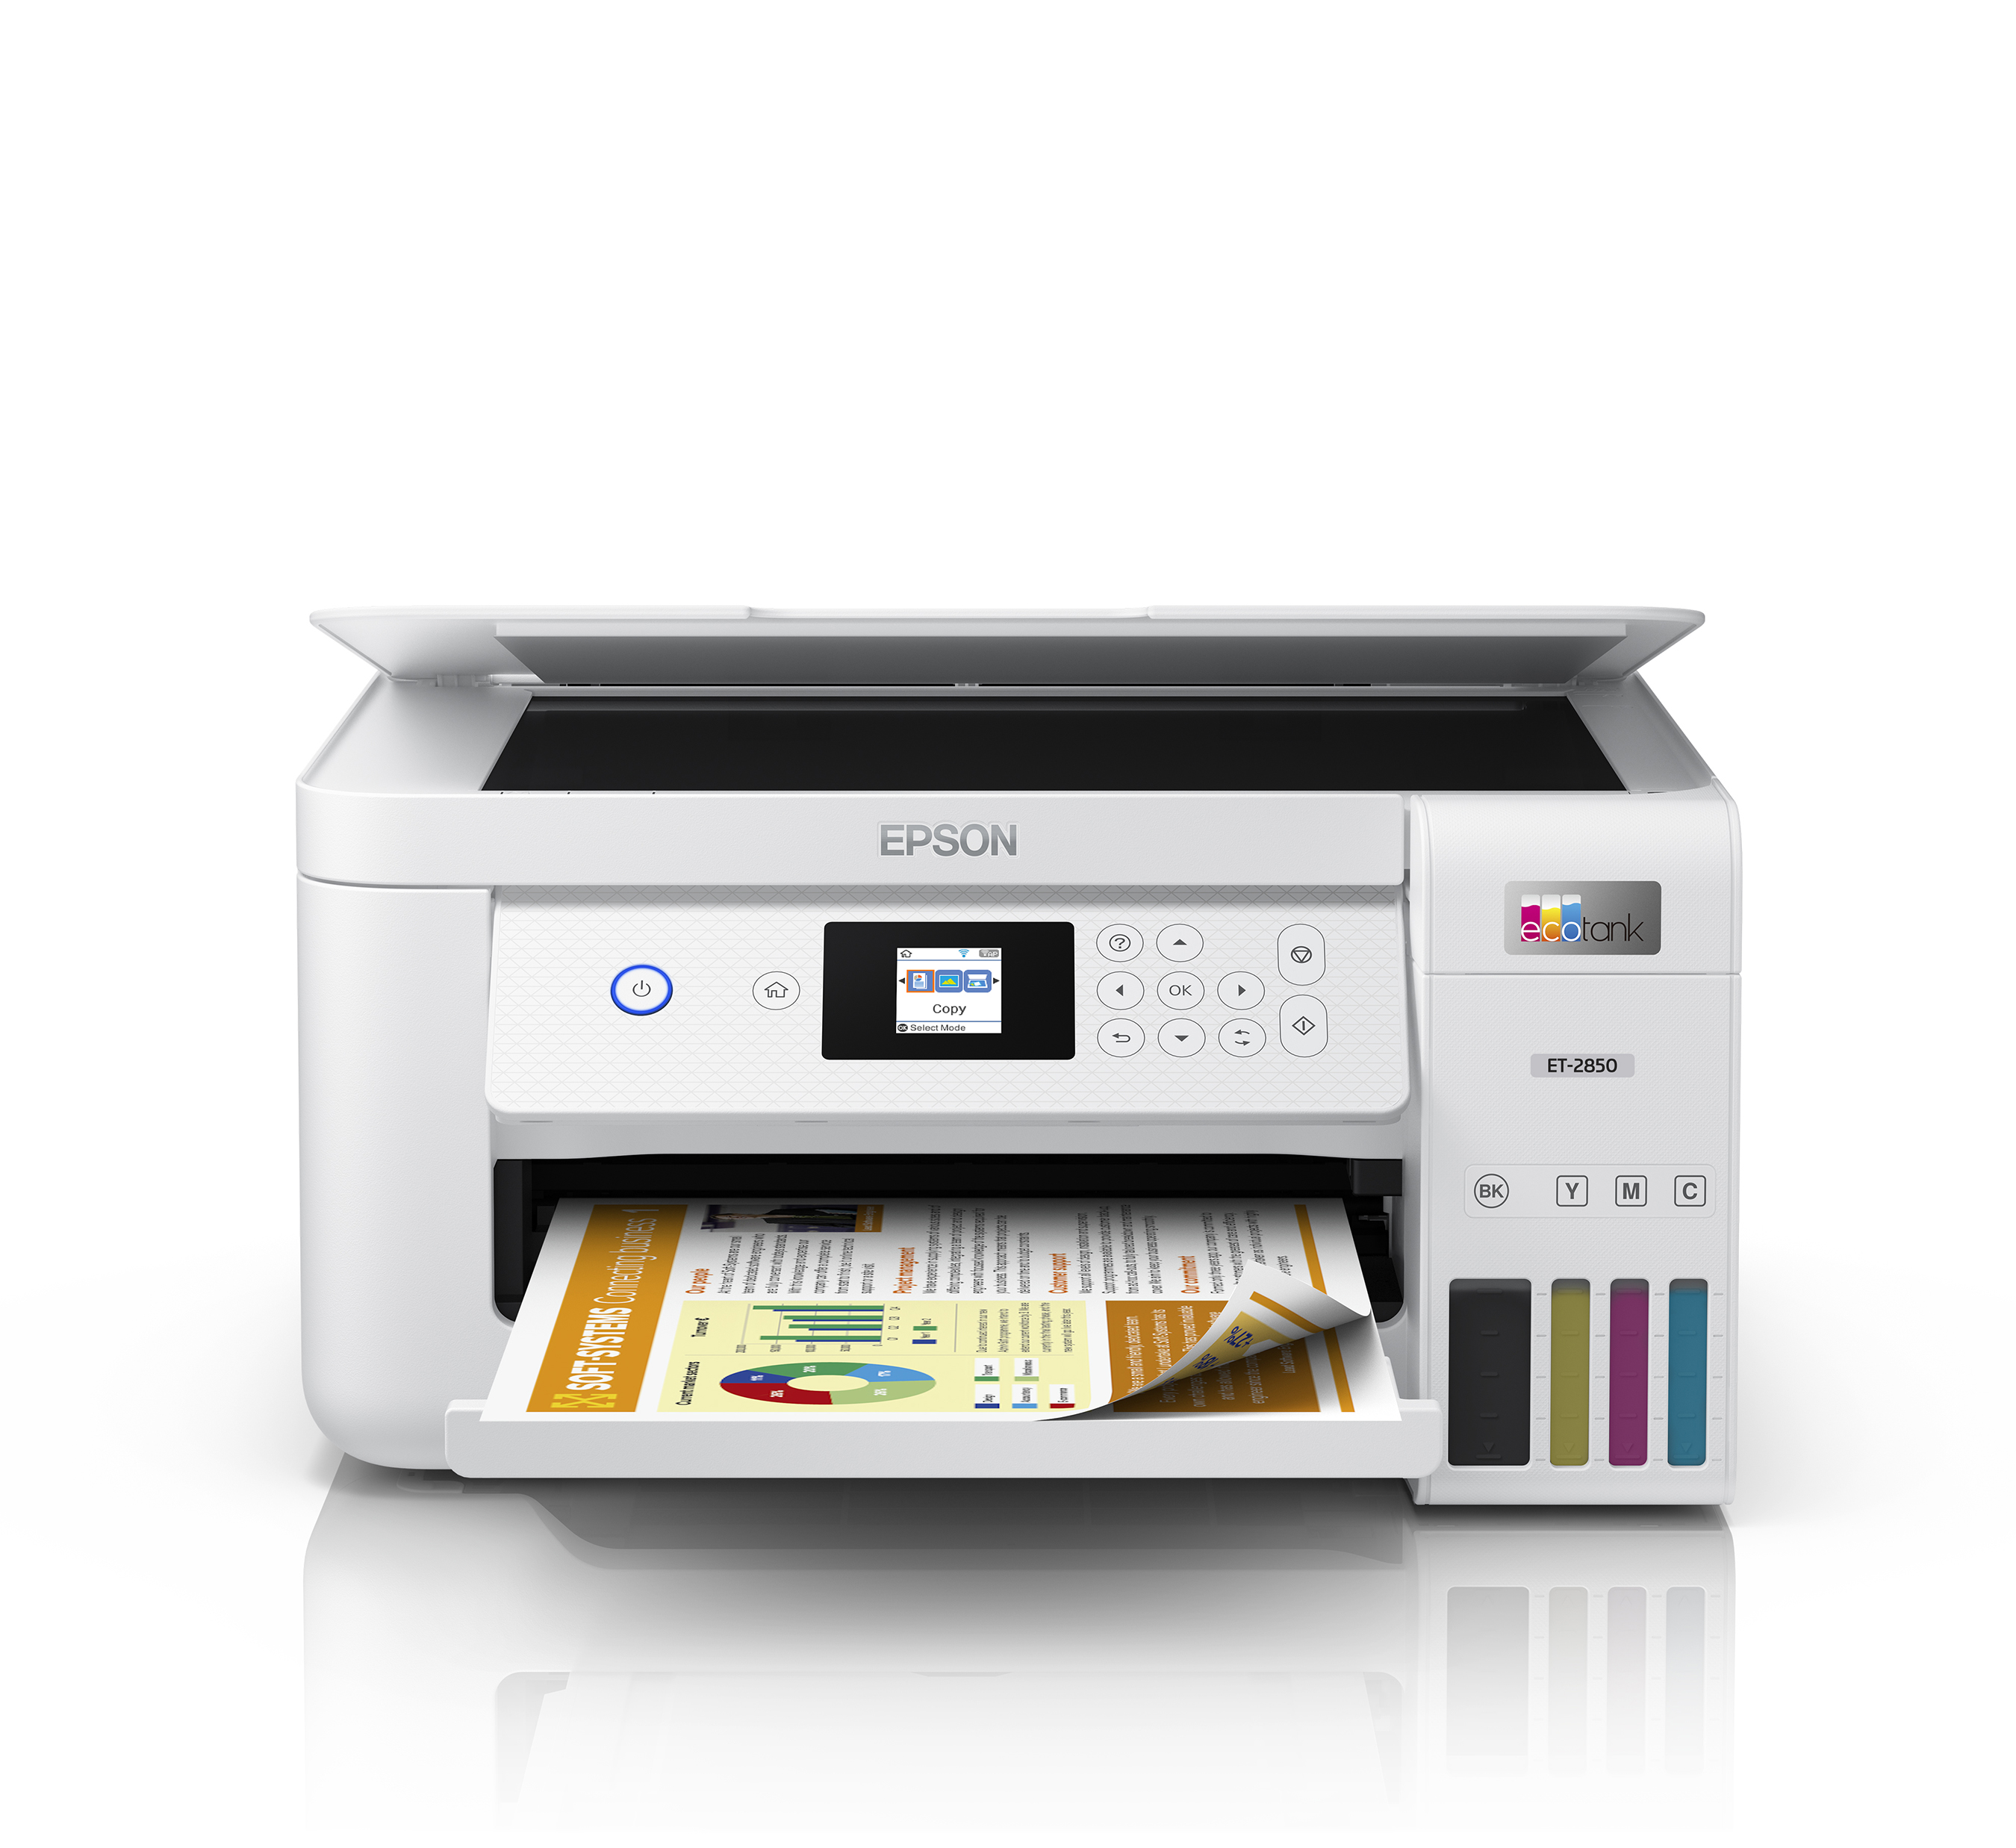 The EcoTank ET-2850 offers 2-sided printing with a built-in scanner and copier, ideal for family home printing.